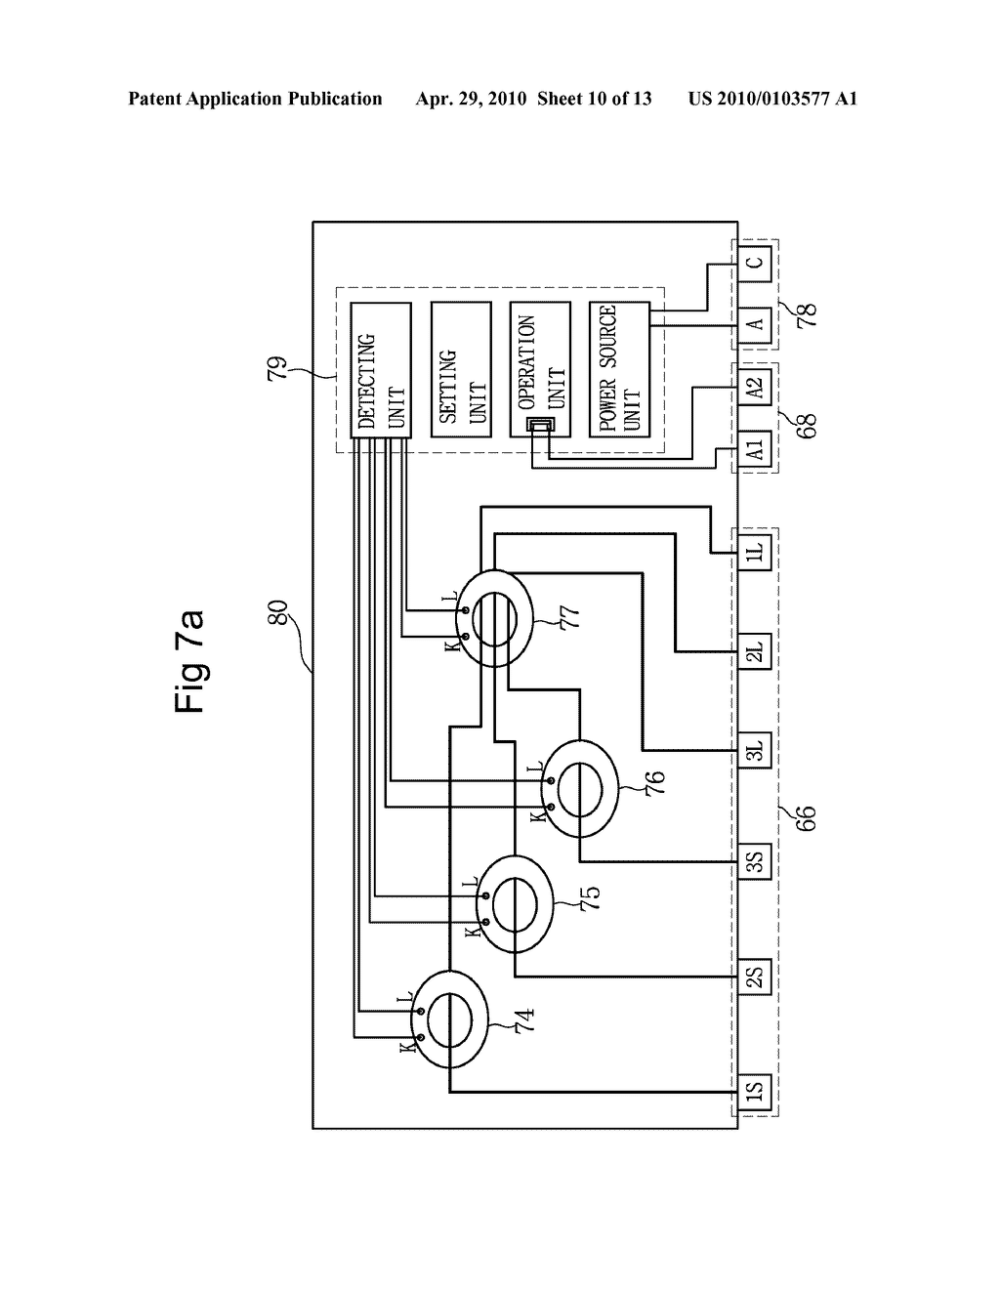 medium resolution of apparatus and method for preventing reverse power flow of over current relay diagram schematic and image 11